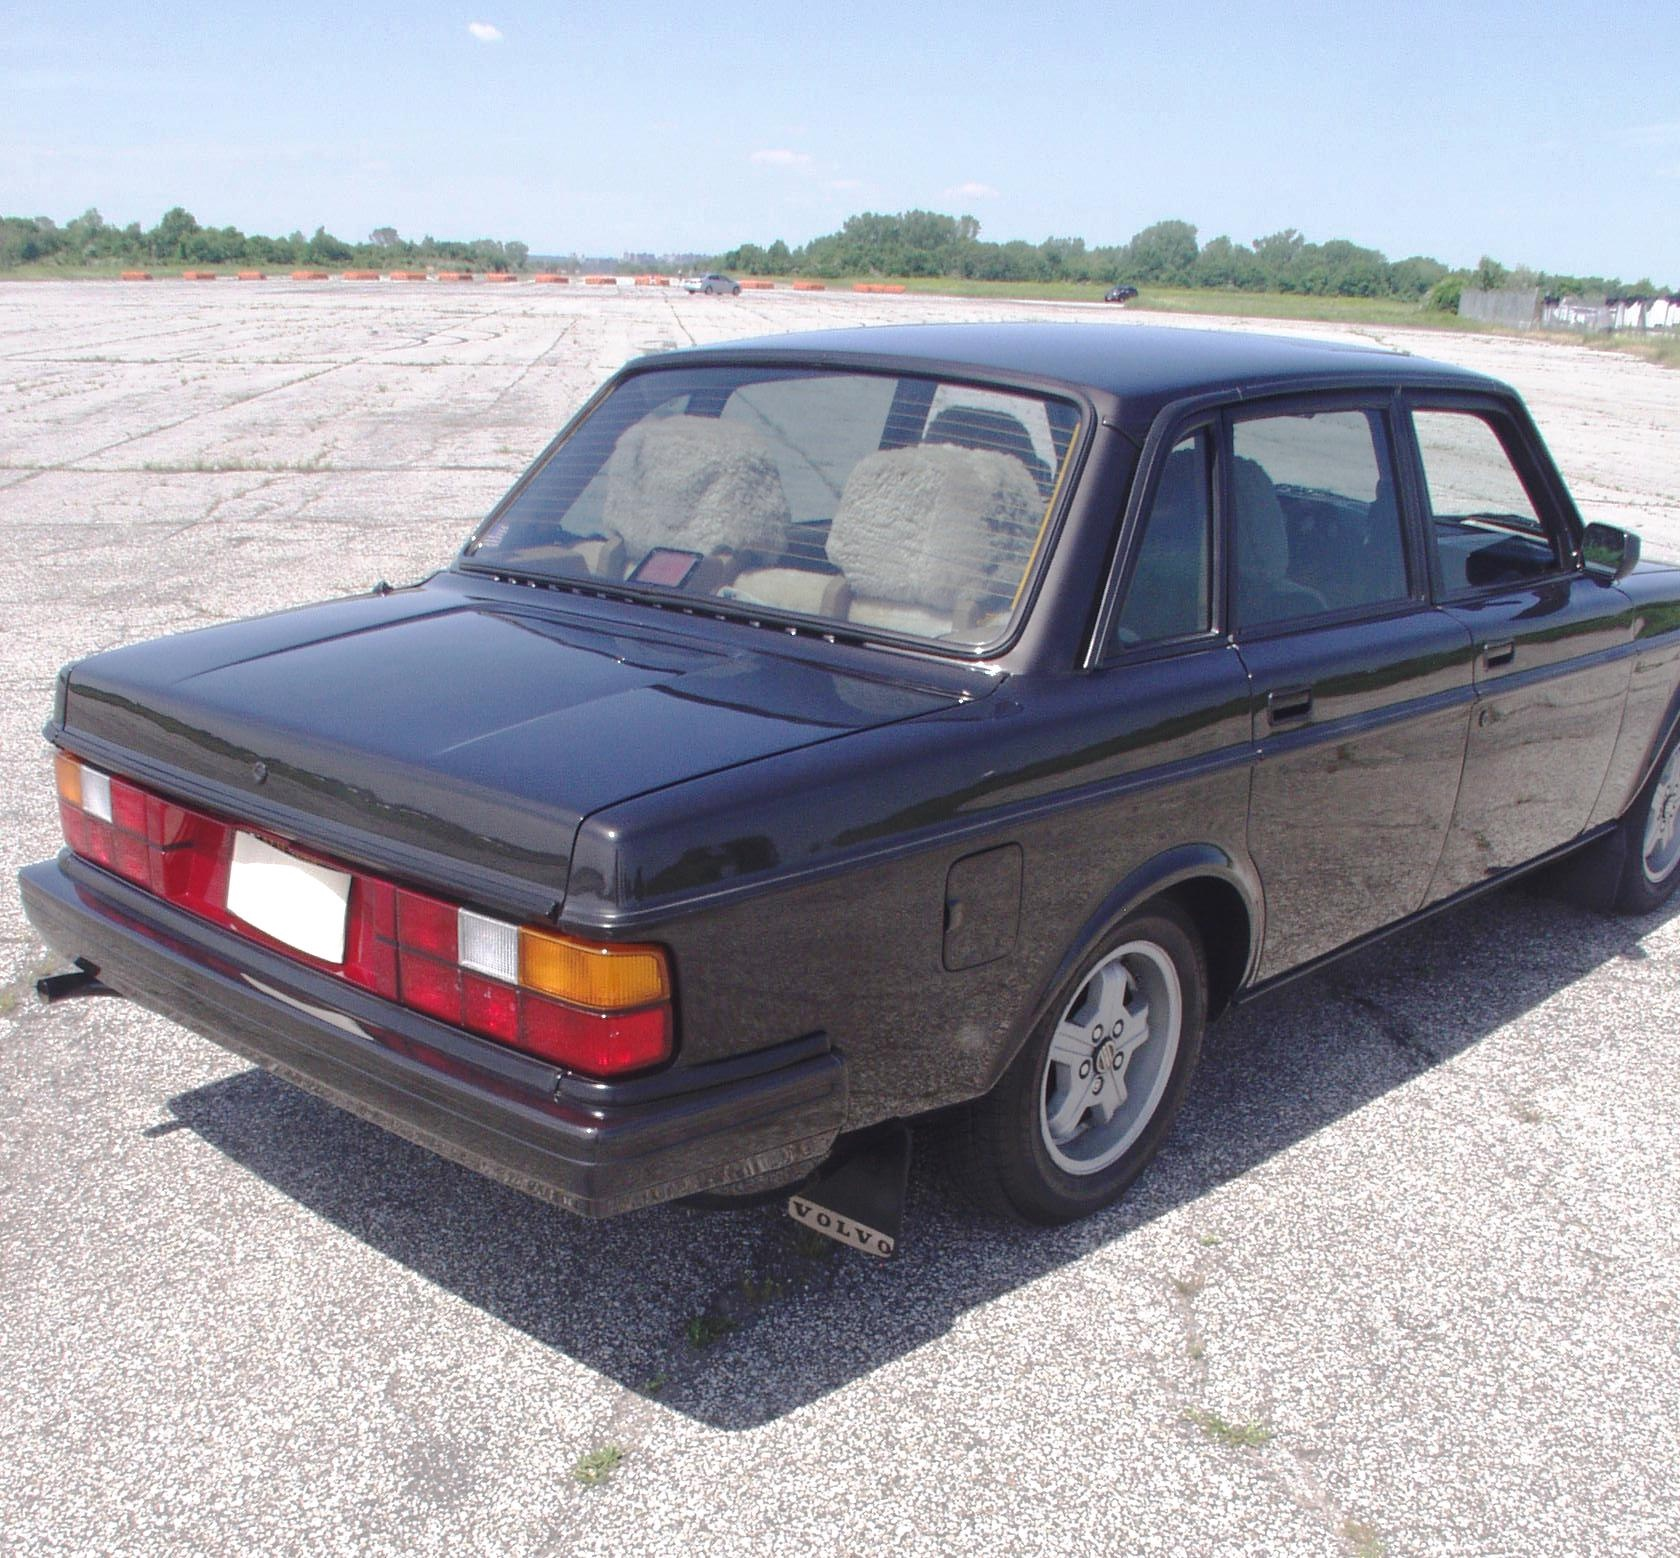 1984 Volvo 240 Stock # 3452-136671 For Sale Near New York